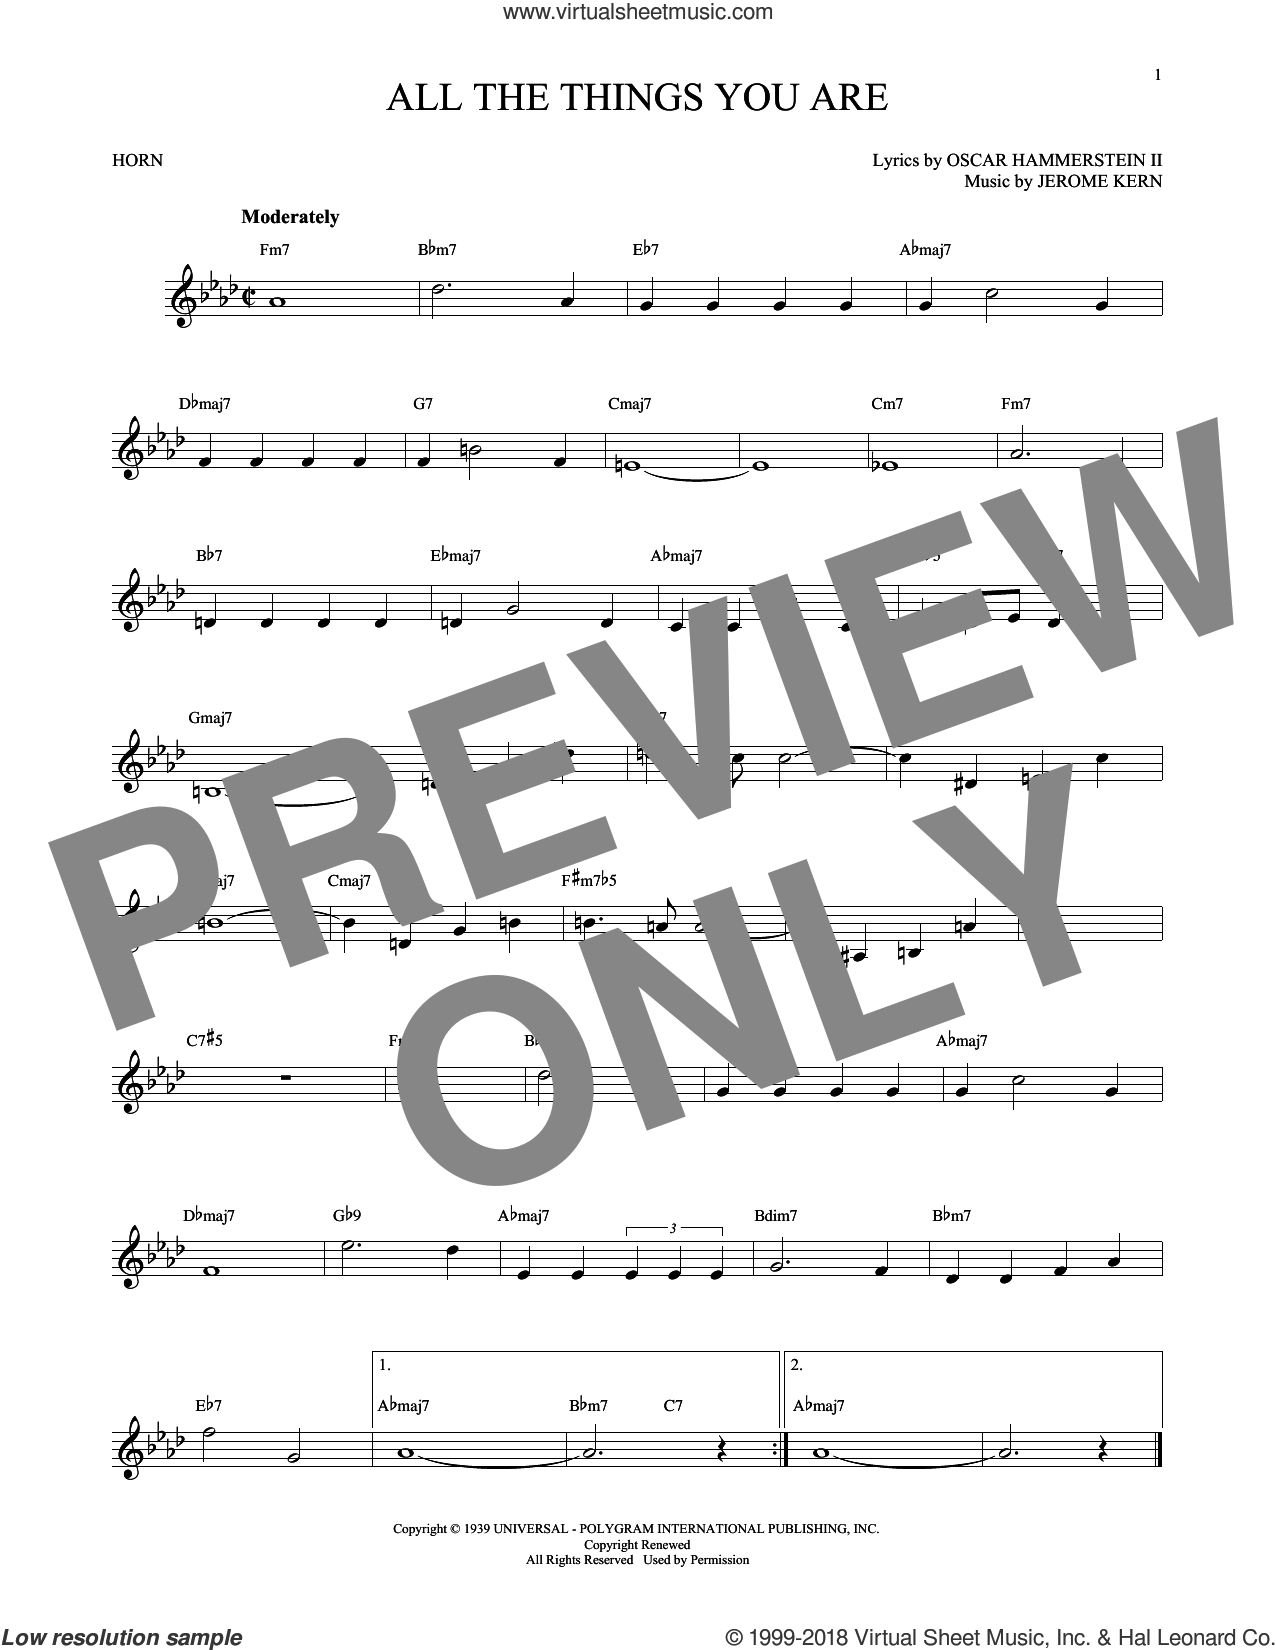 All The Things You Are sheet music for horn solo by Oscar II Hammerstein, Jack Leonard with Tommy Dorsey Orchestra and Jerome Kern, intermediate skill level